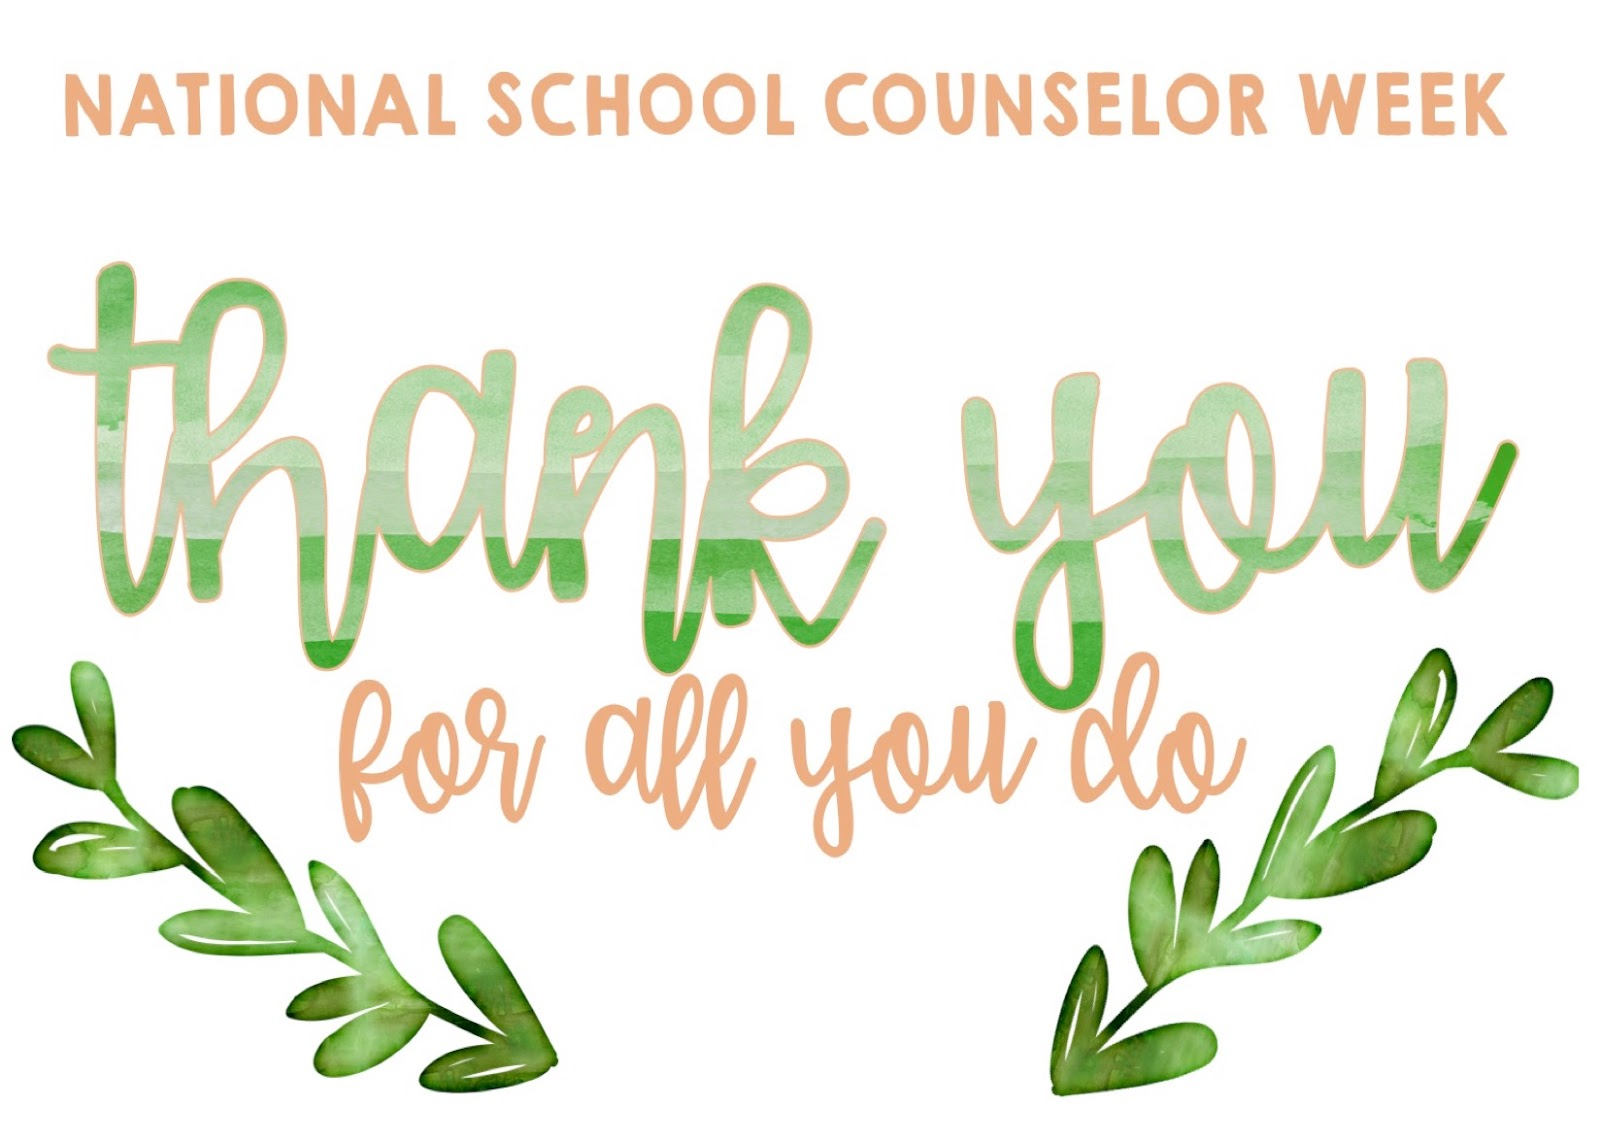 national school counselor week ideas and resources to celebrate